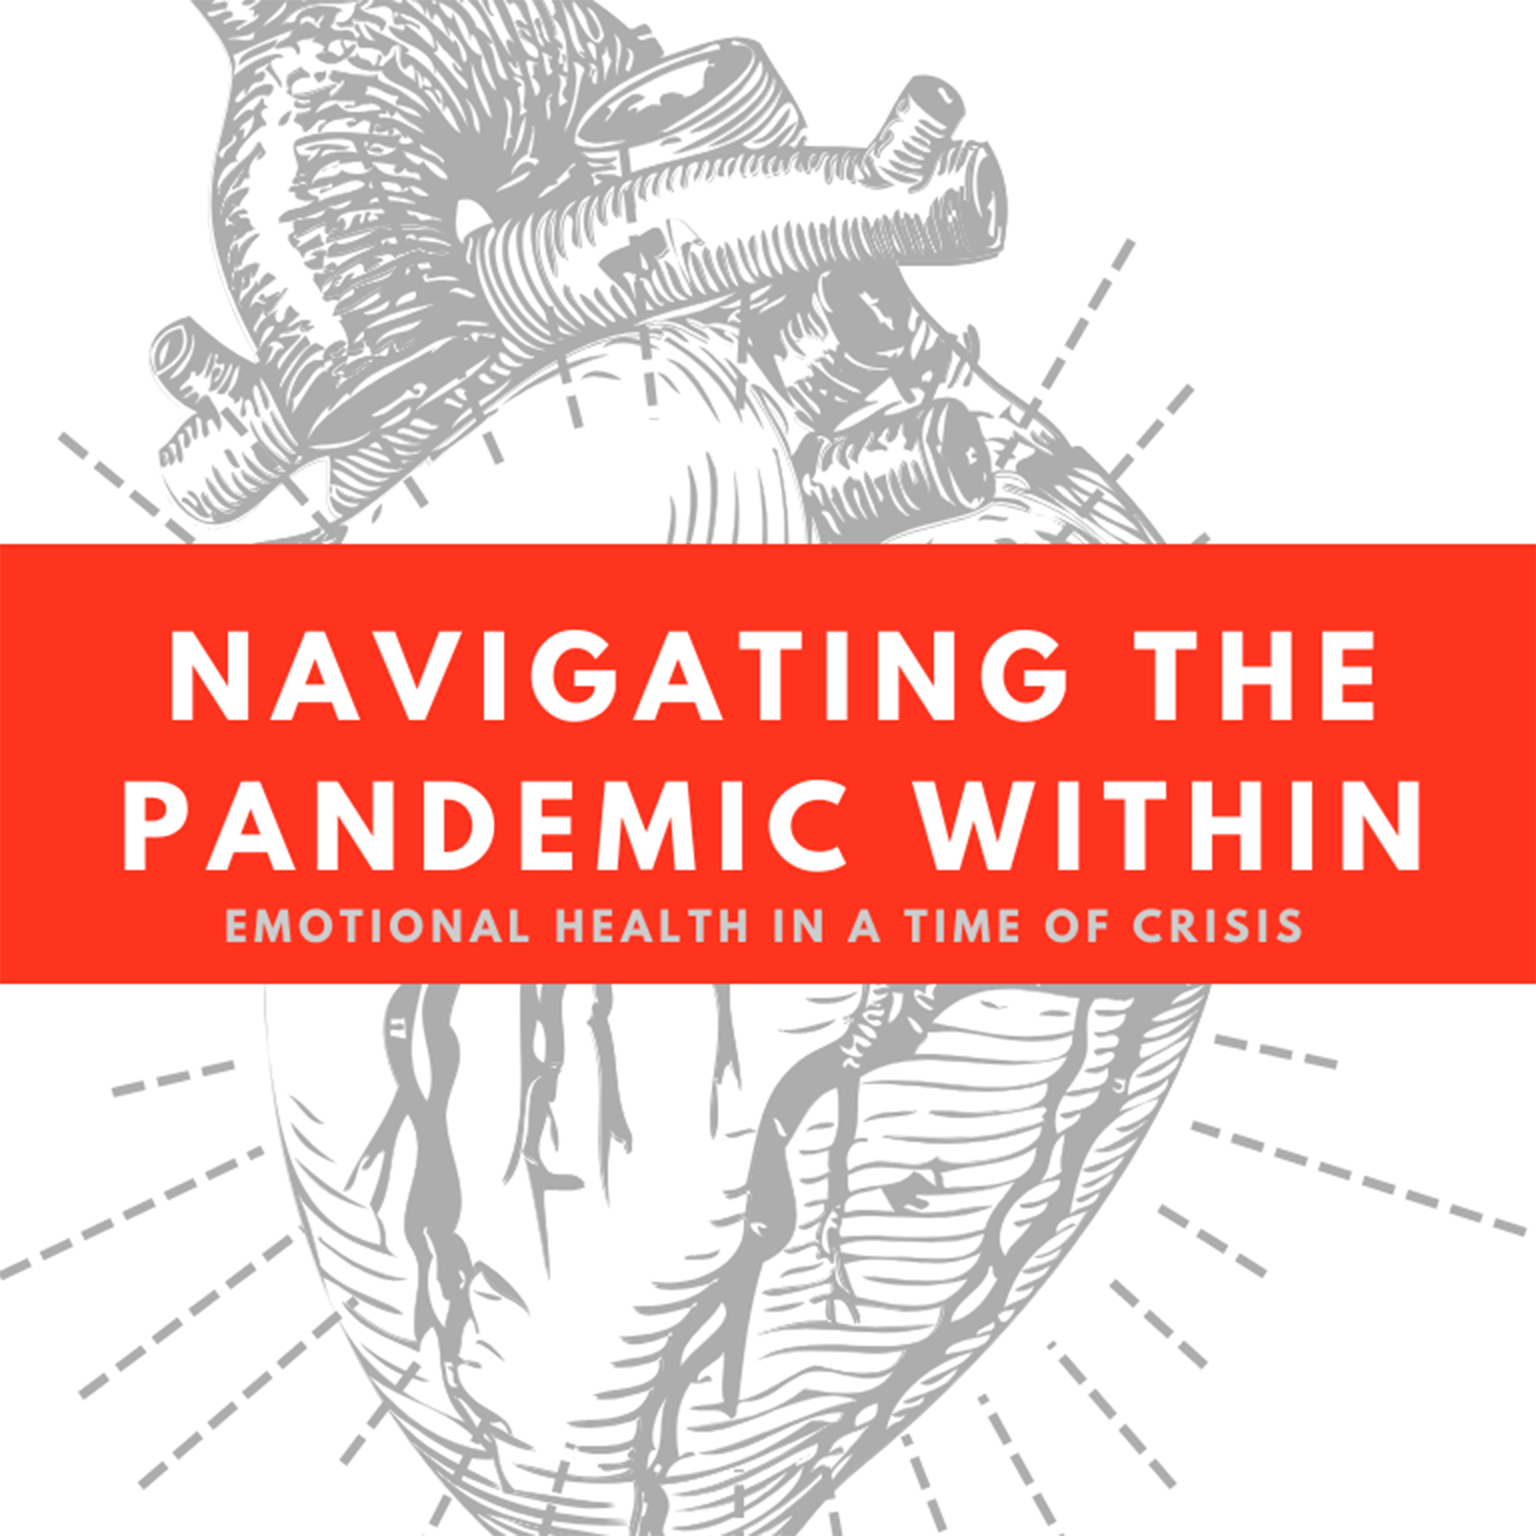 Navigating the Pandemic Within